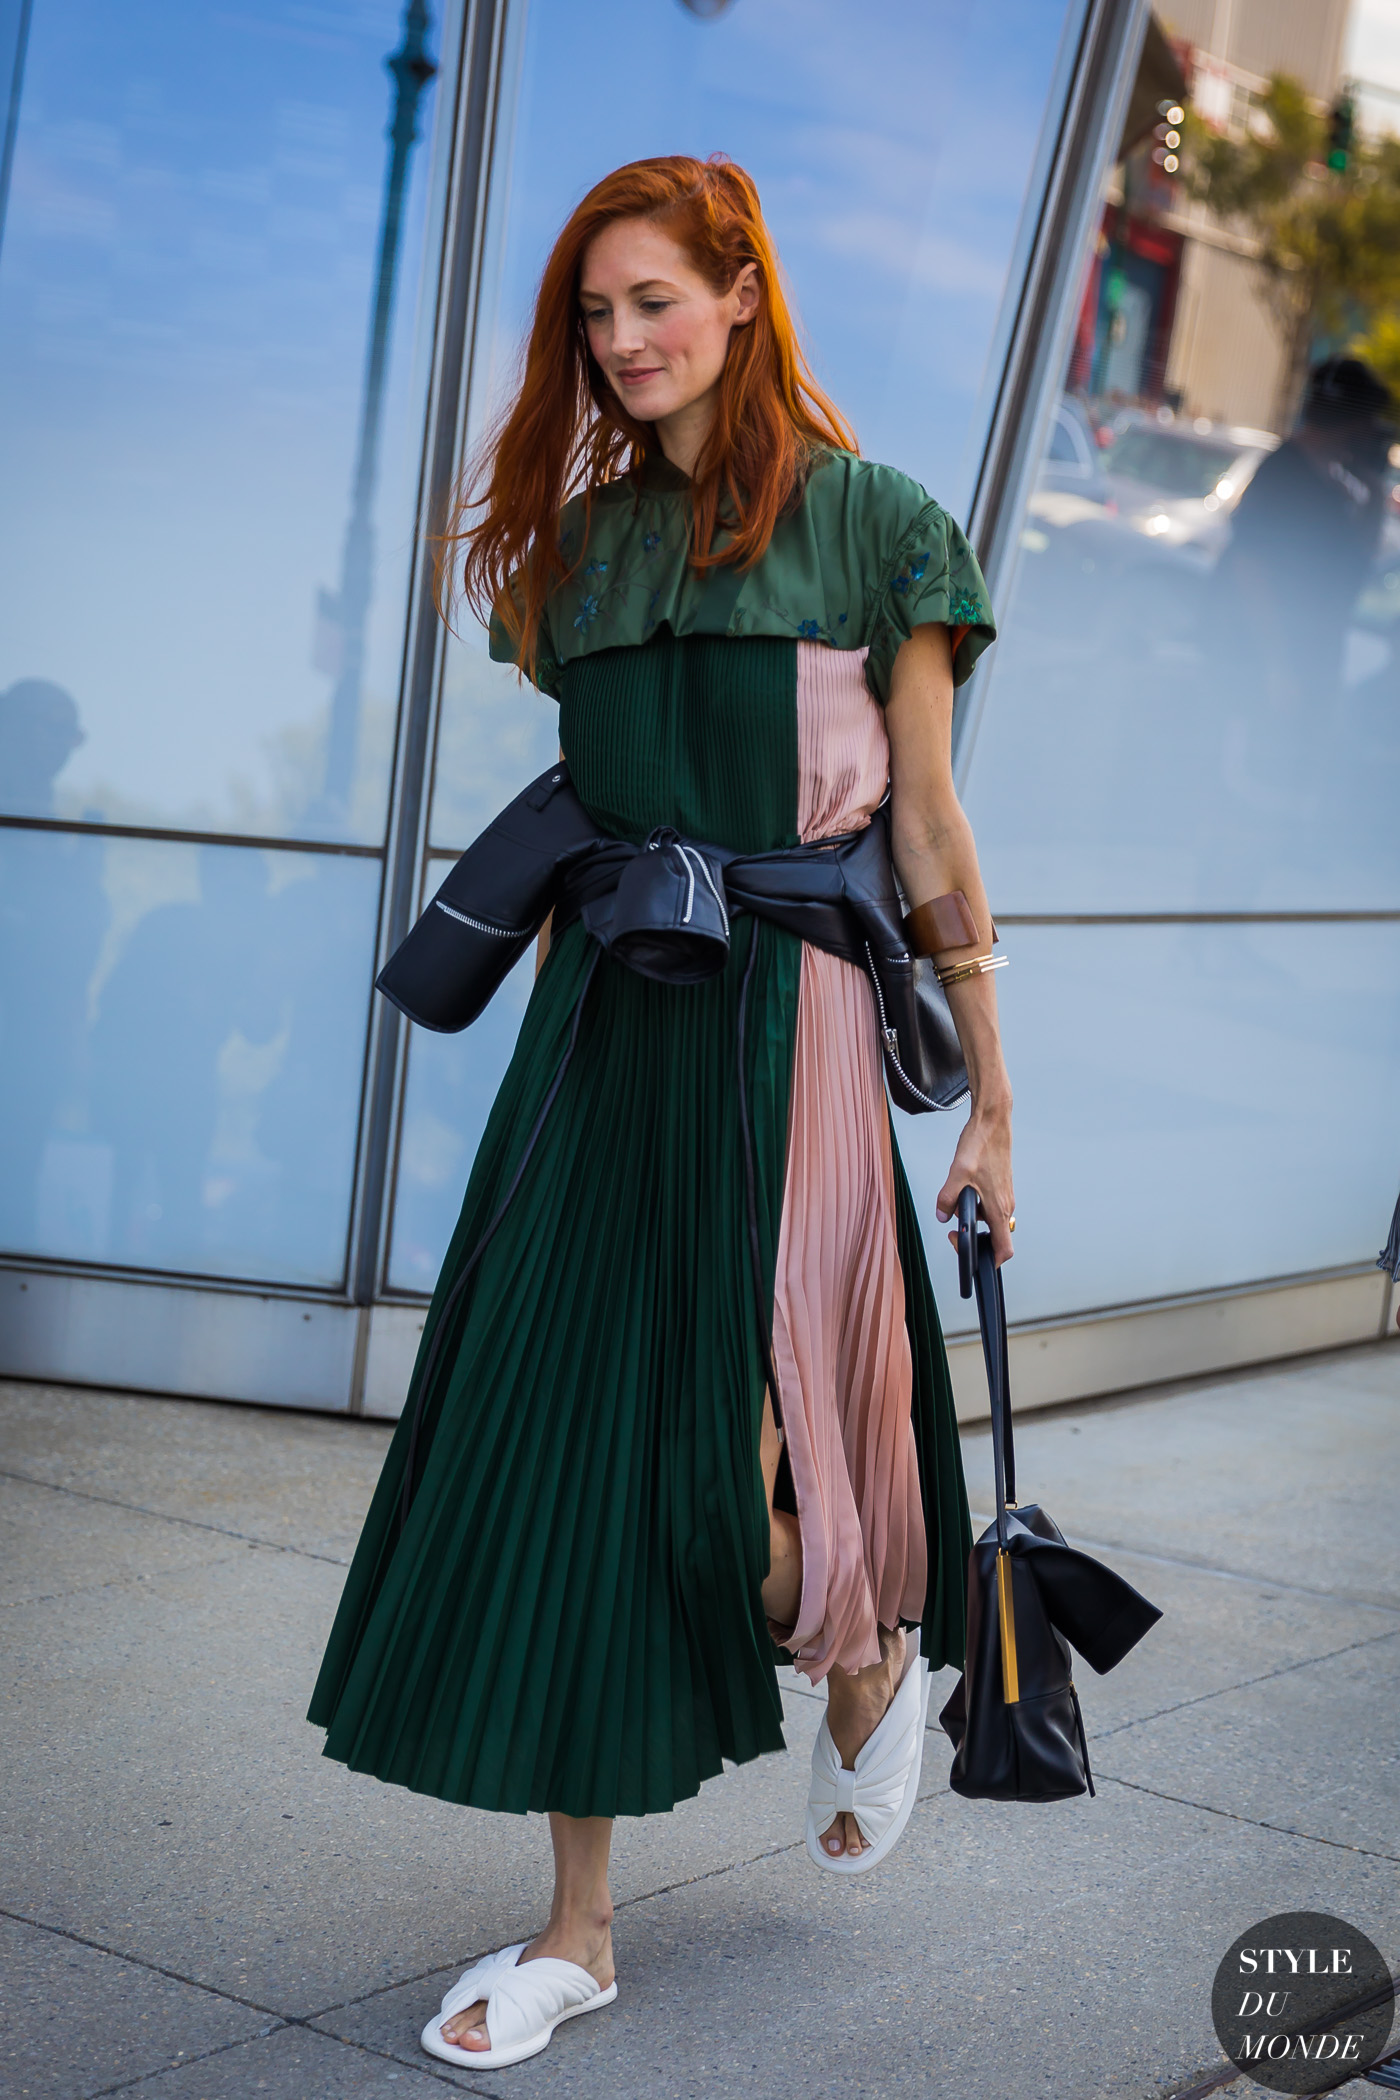 Taylor Tomasi Hill by STYLEDUMONDE Street Style Fashion Photography_48A2737